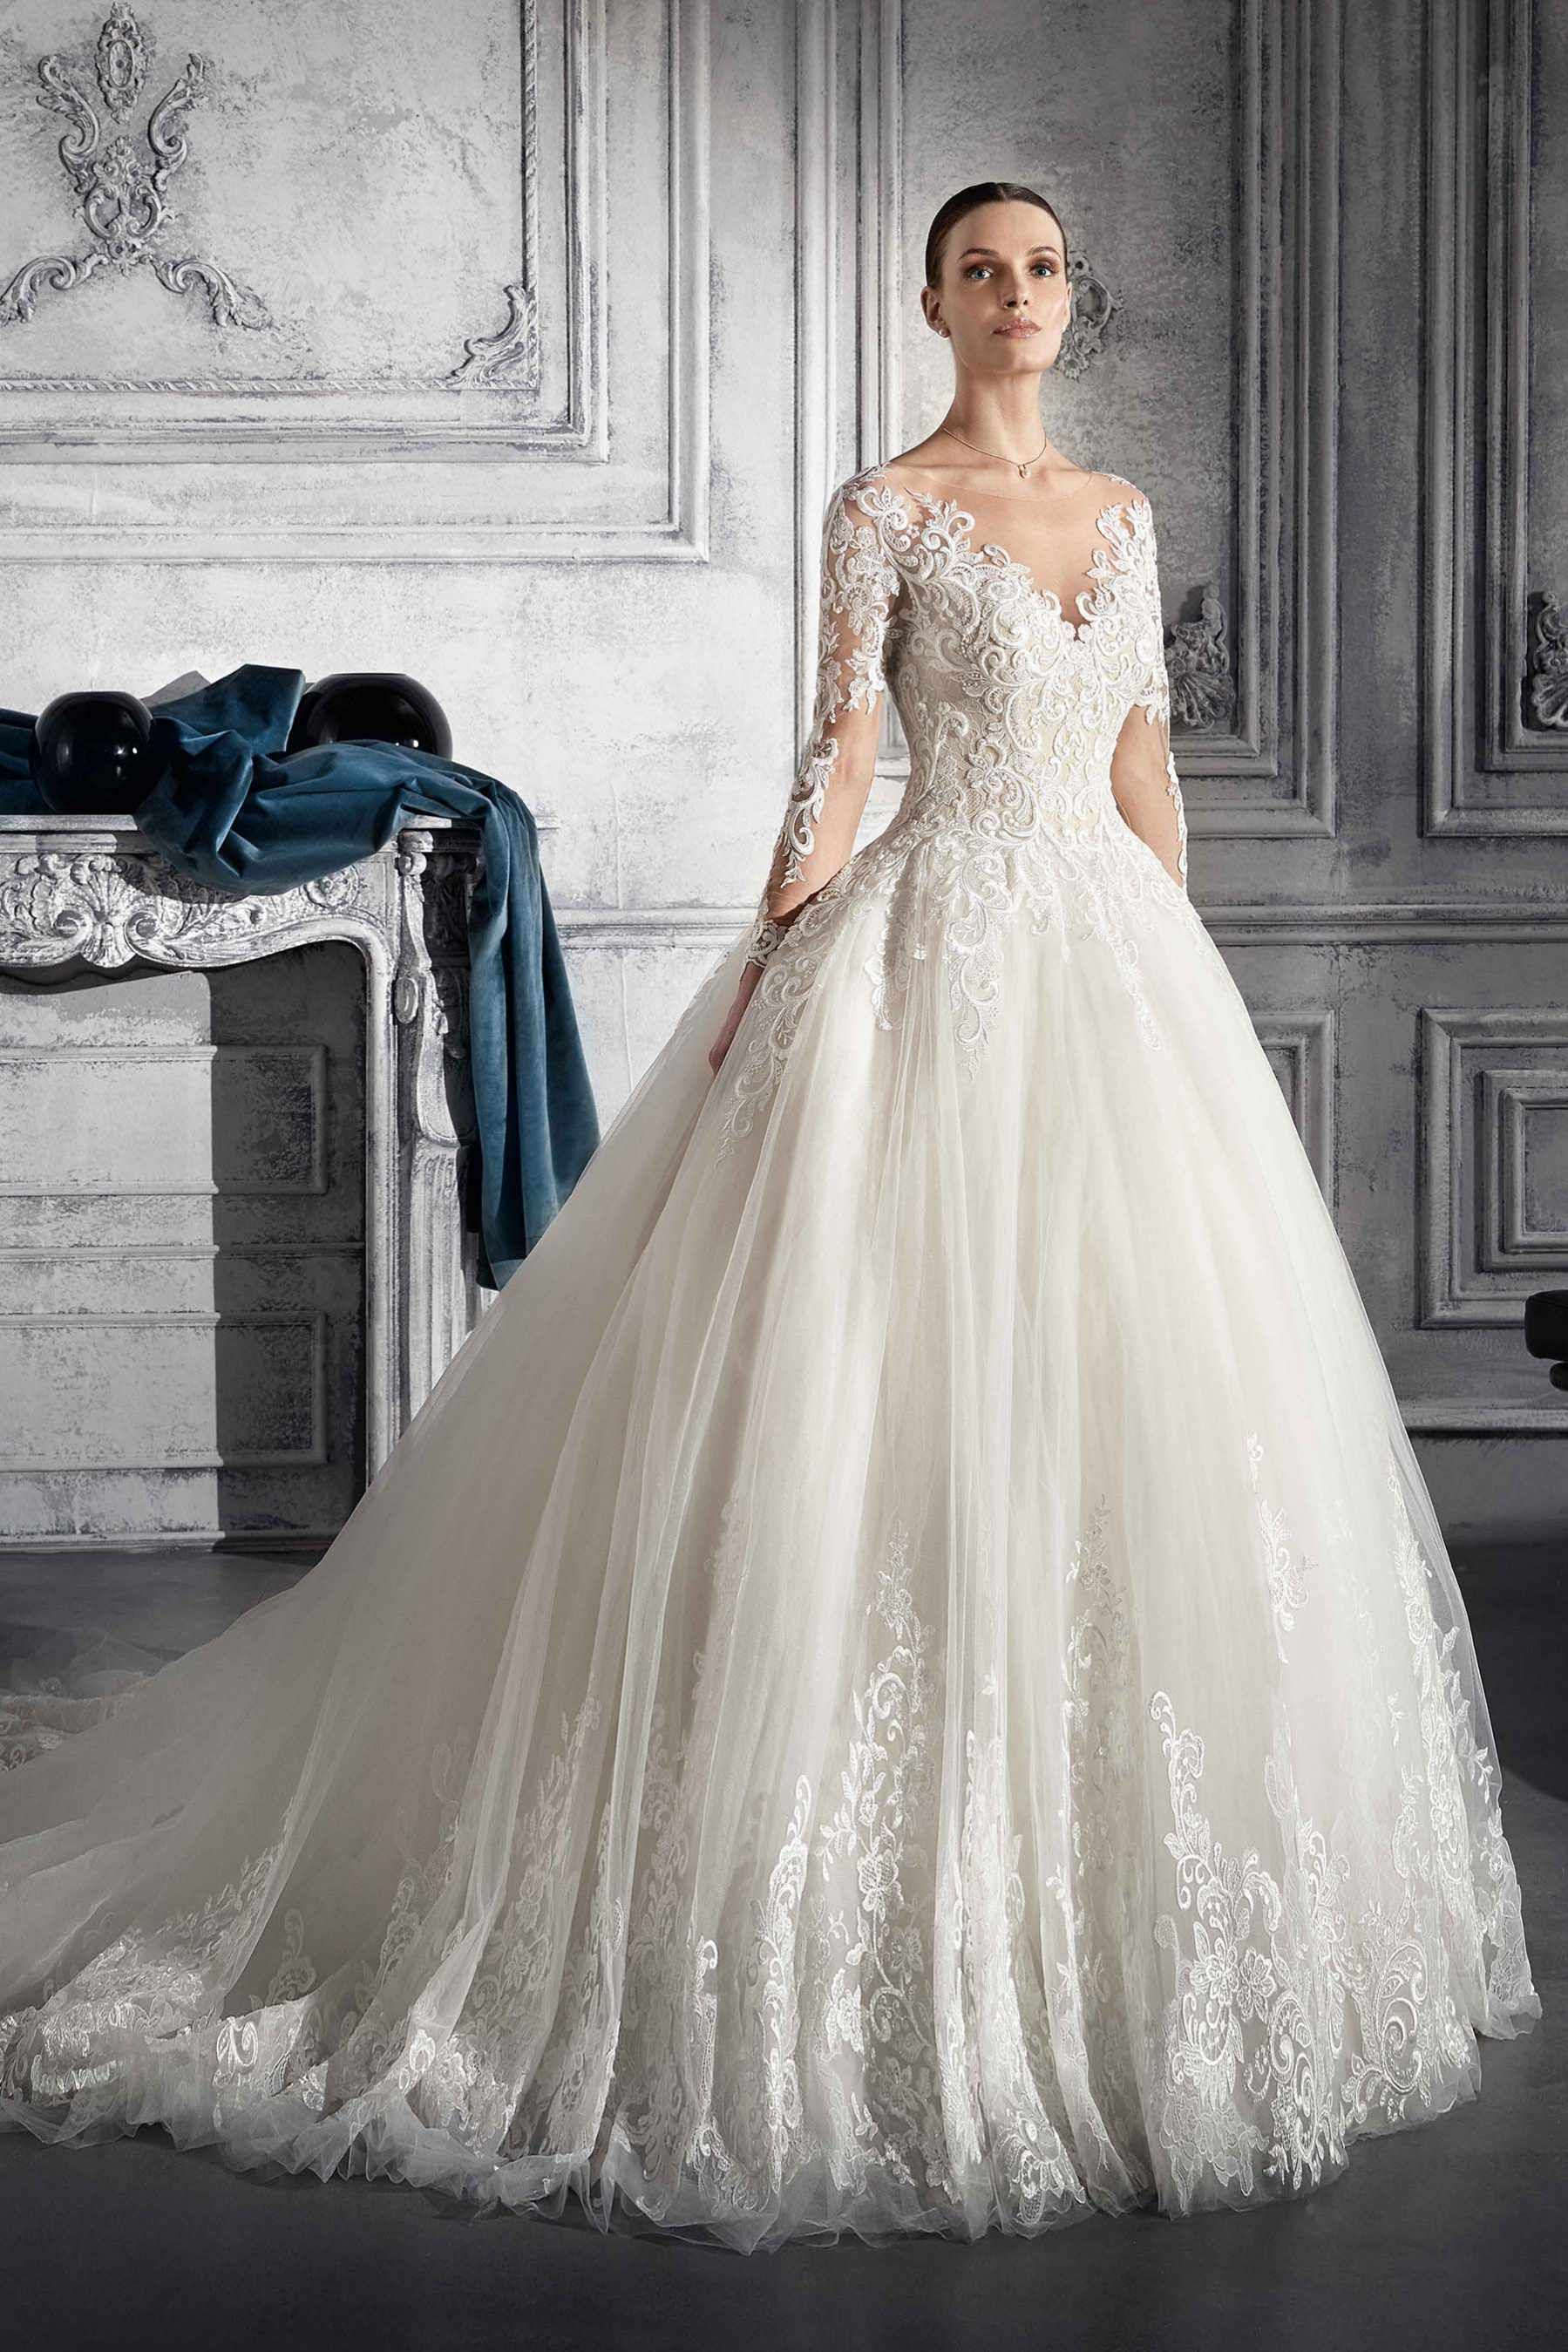 Demetrios Wedding Dress Style 760 The Love Child Of Oldworld Romance And New Age Passion Traditional Silhouette This Ball Gown Es To Life With: New Old Wedding Dresses At Reisefeber.org